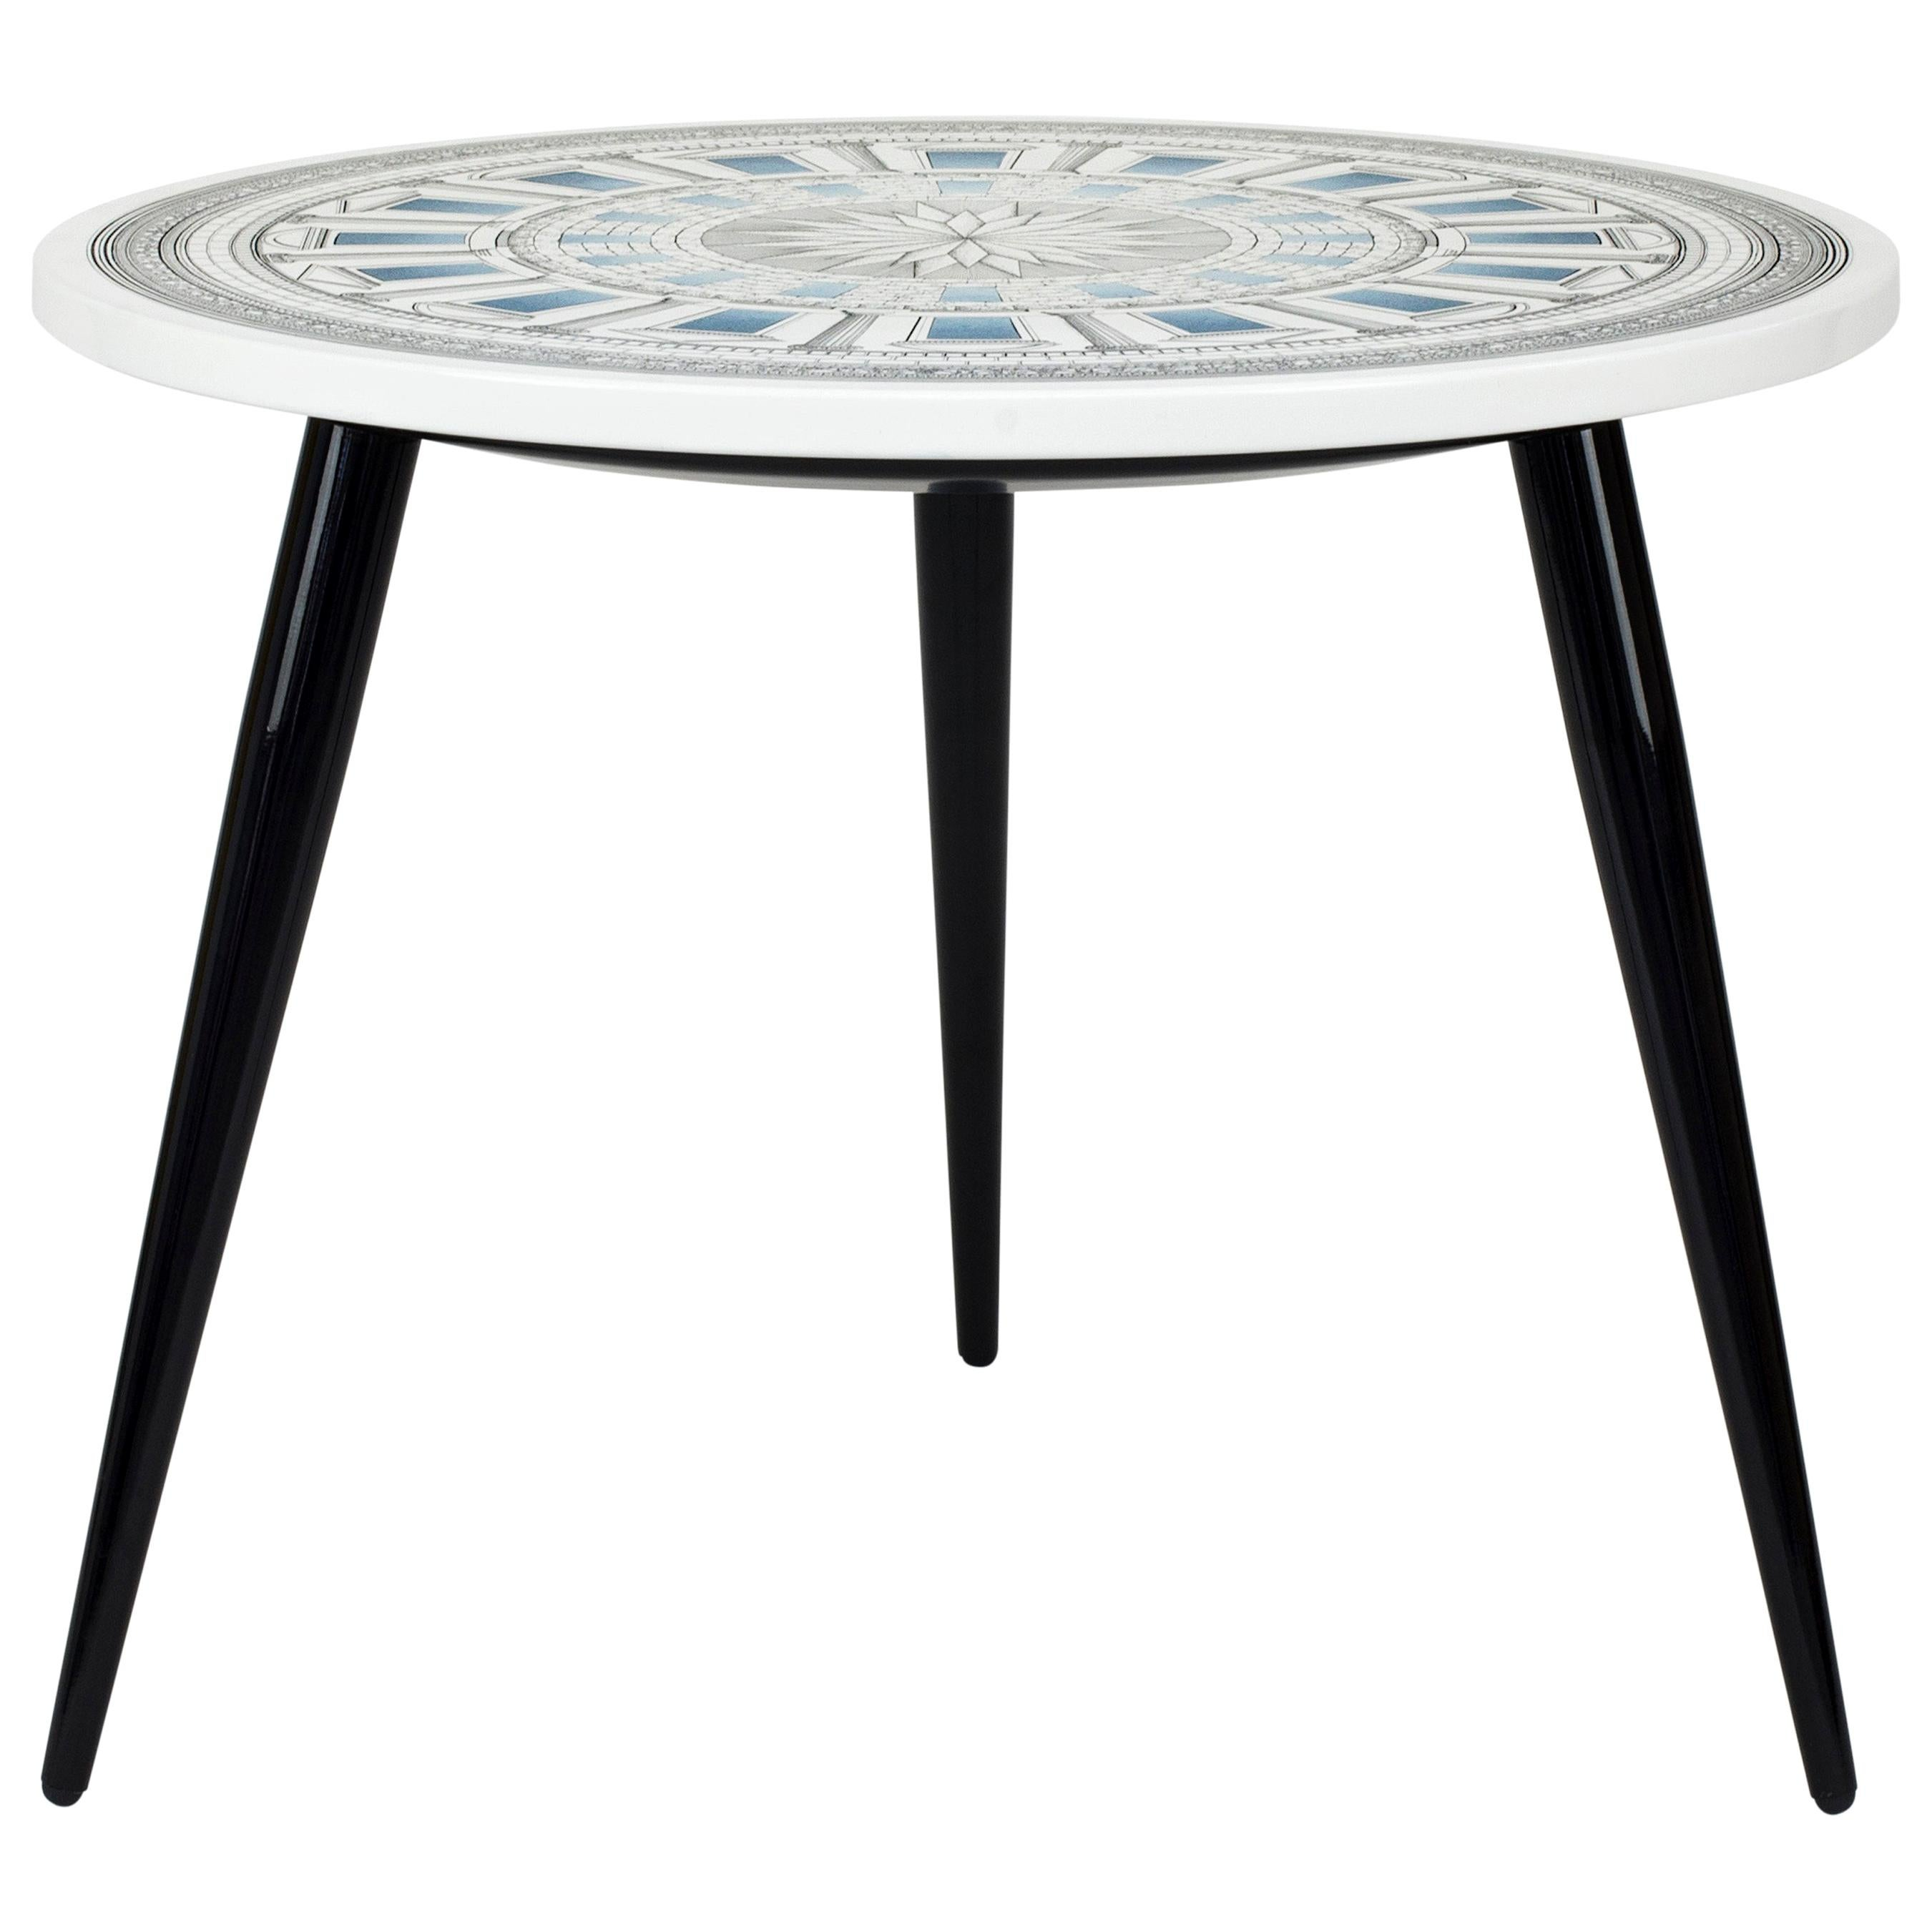 Fornasetti Table Top Cortile Celeste Architectural Motif, Wooden Legs